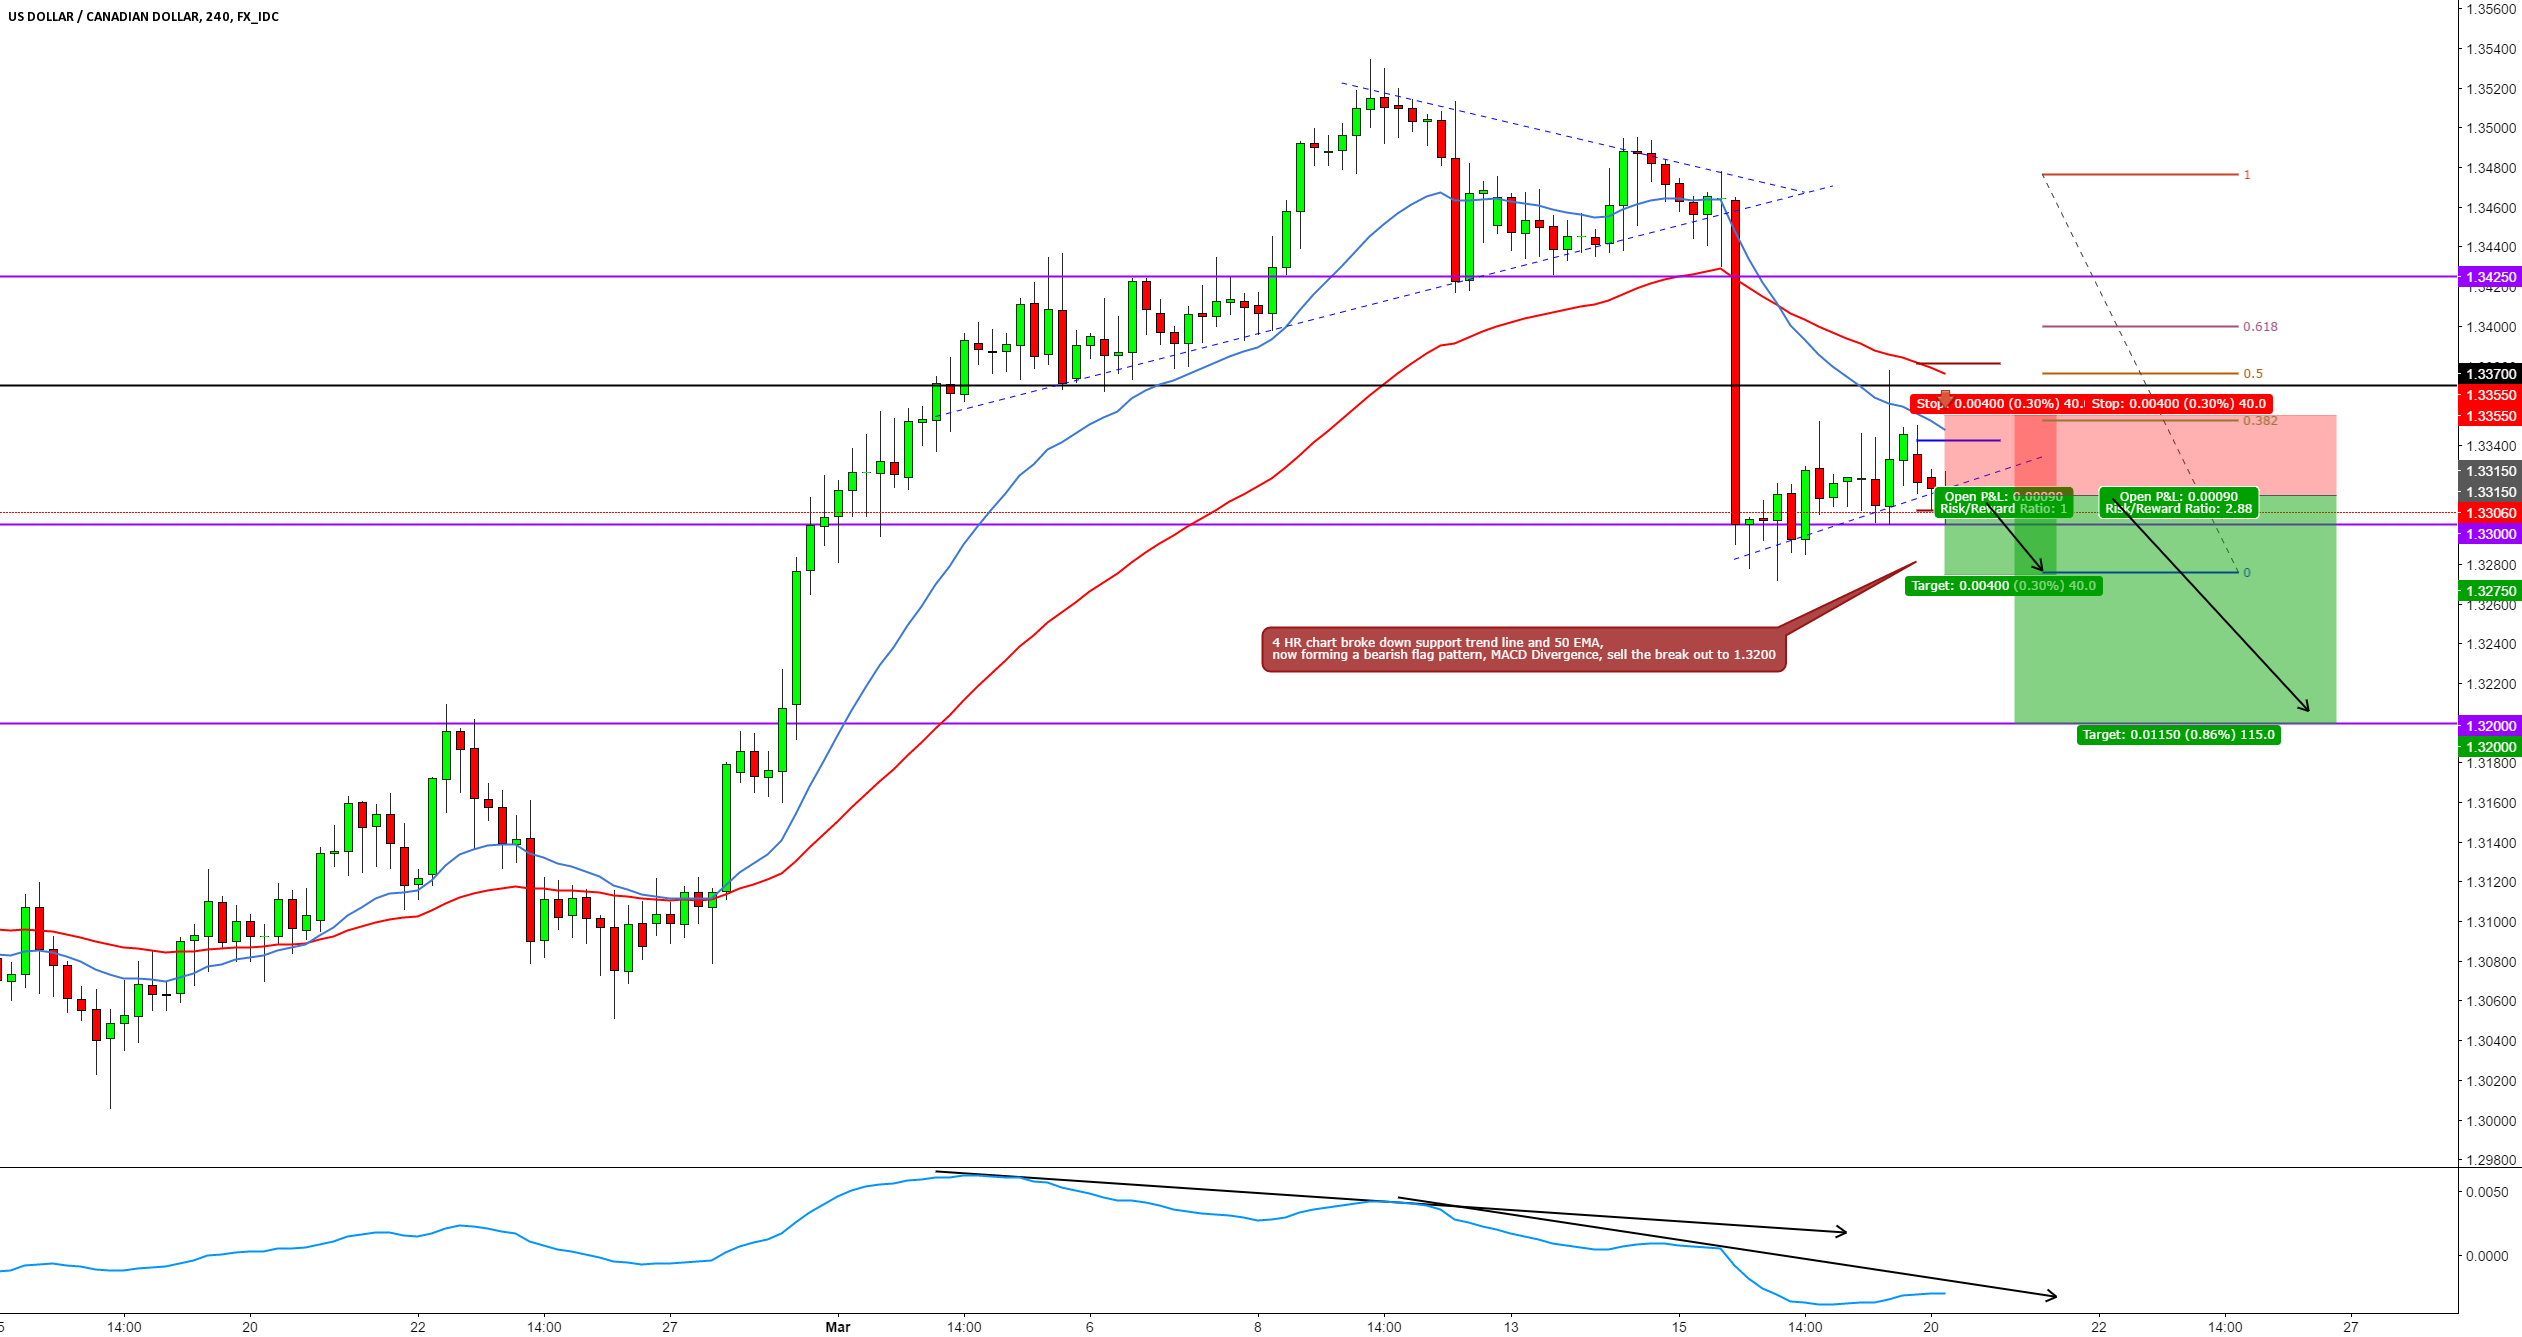 USDCAD SHORT 4 HR INTRADAY BREAKOUT TRADE SETUP